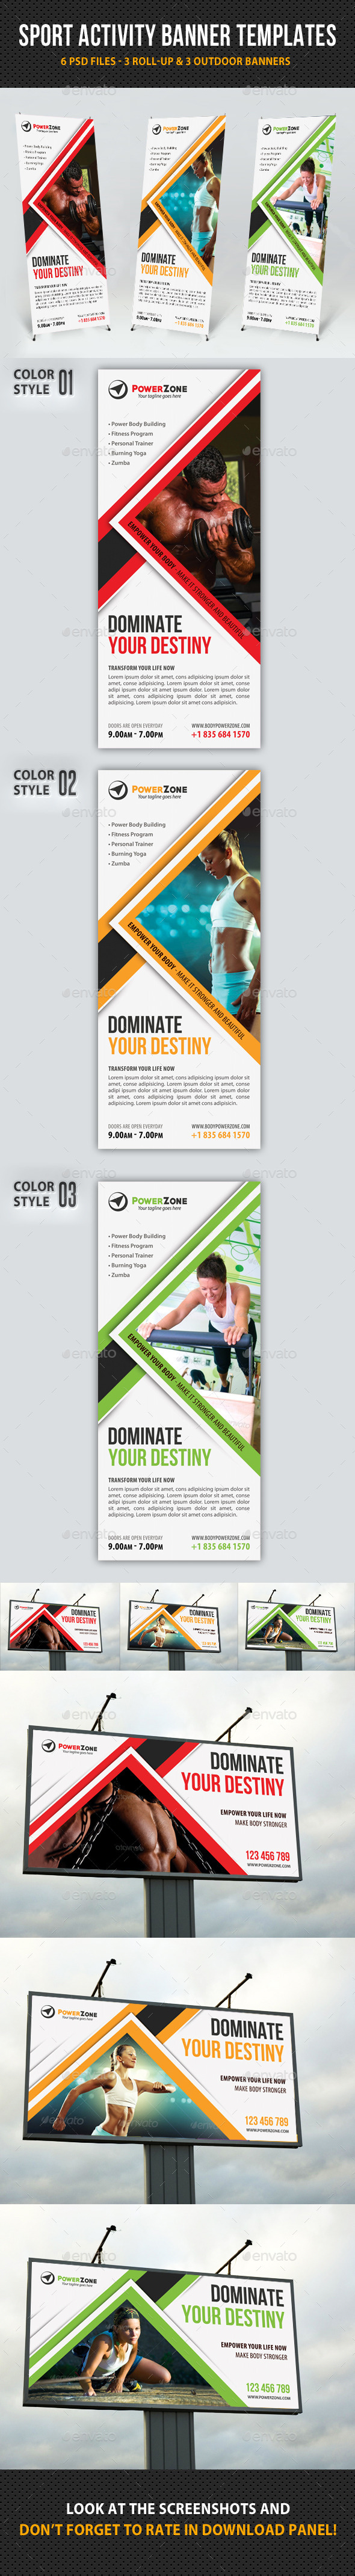 GraphicRiver Sport Activity Banner Templates 9259826